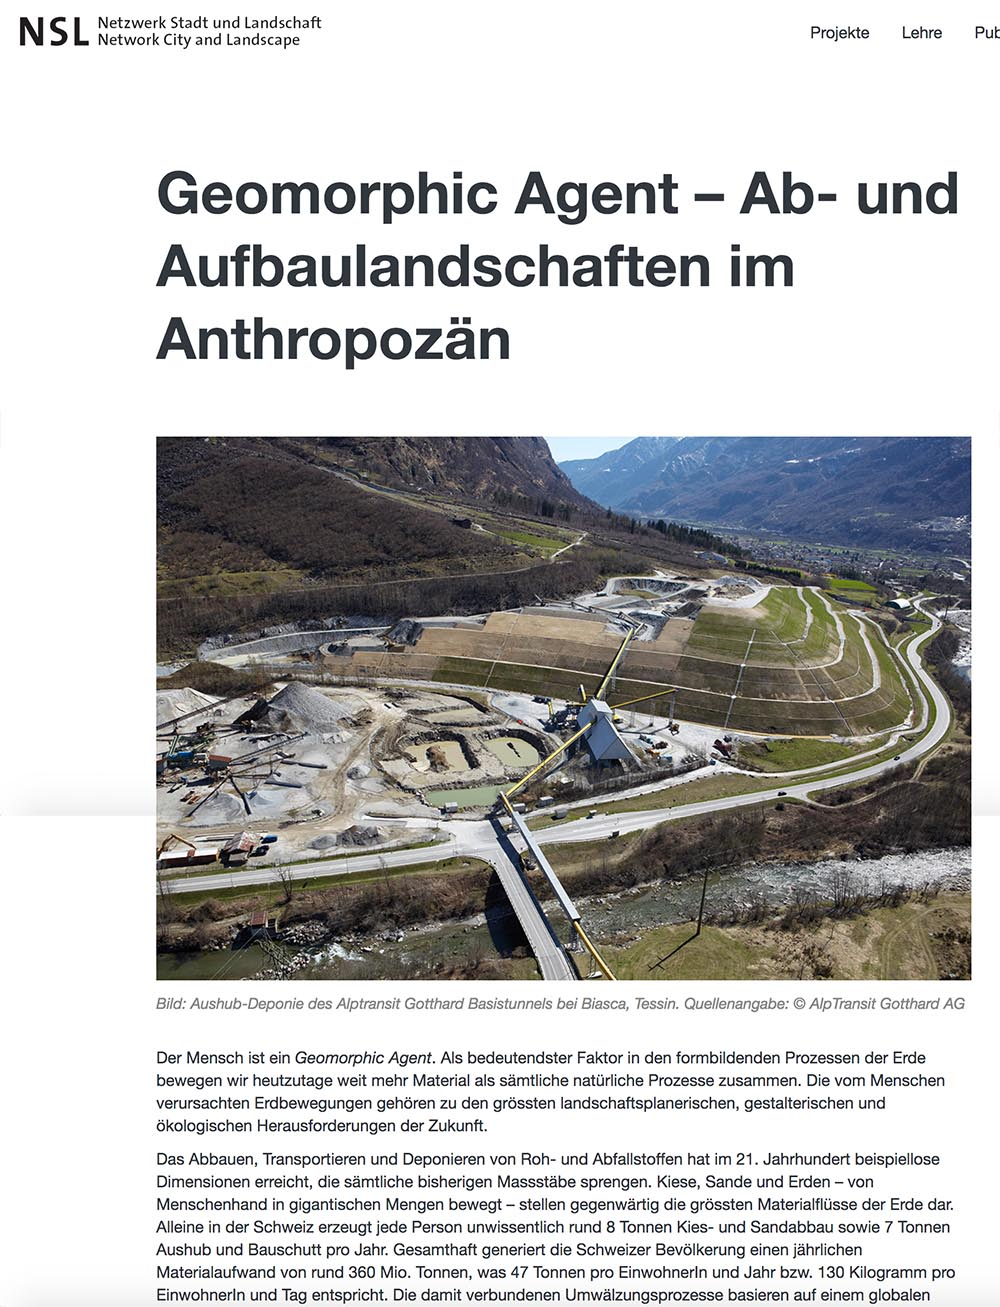 Geomorphic Agent – Landscapes of extraction in the anthropocene  Daia Stutz in: Network City and Landscape NSL, Newsletter March 2016